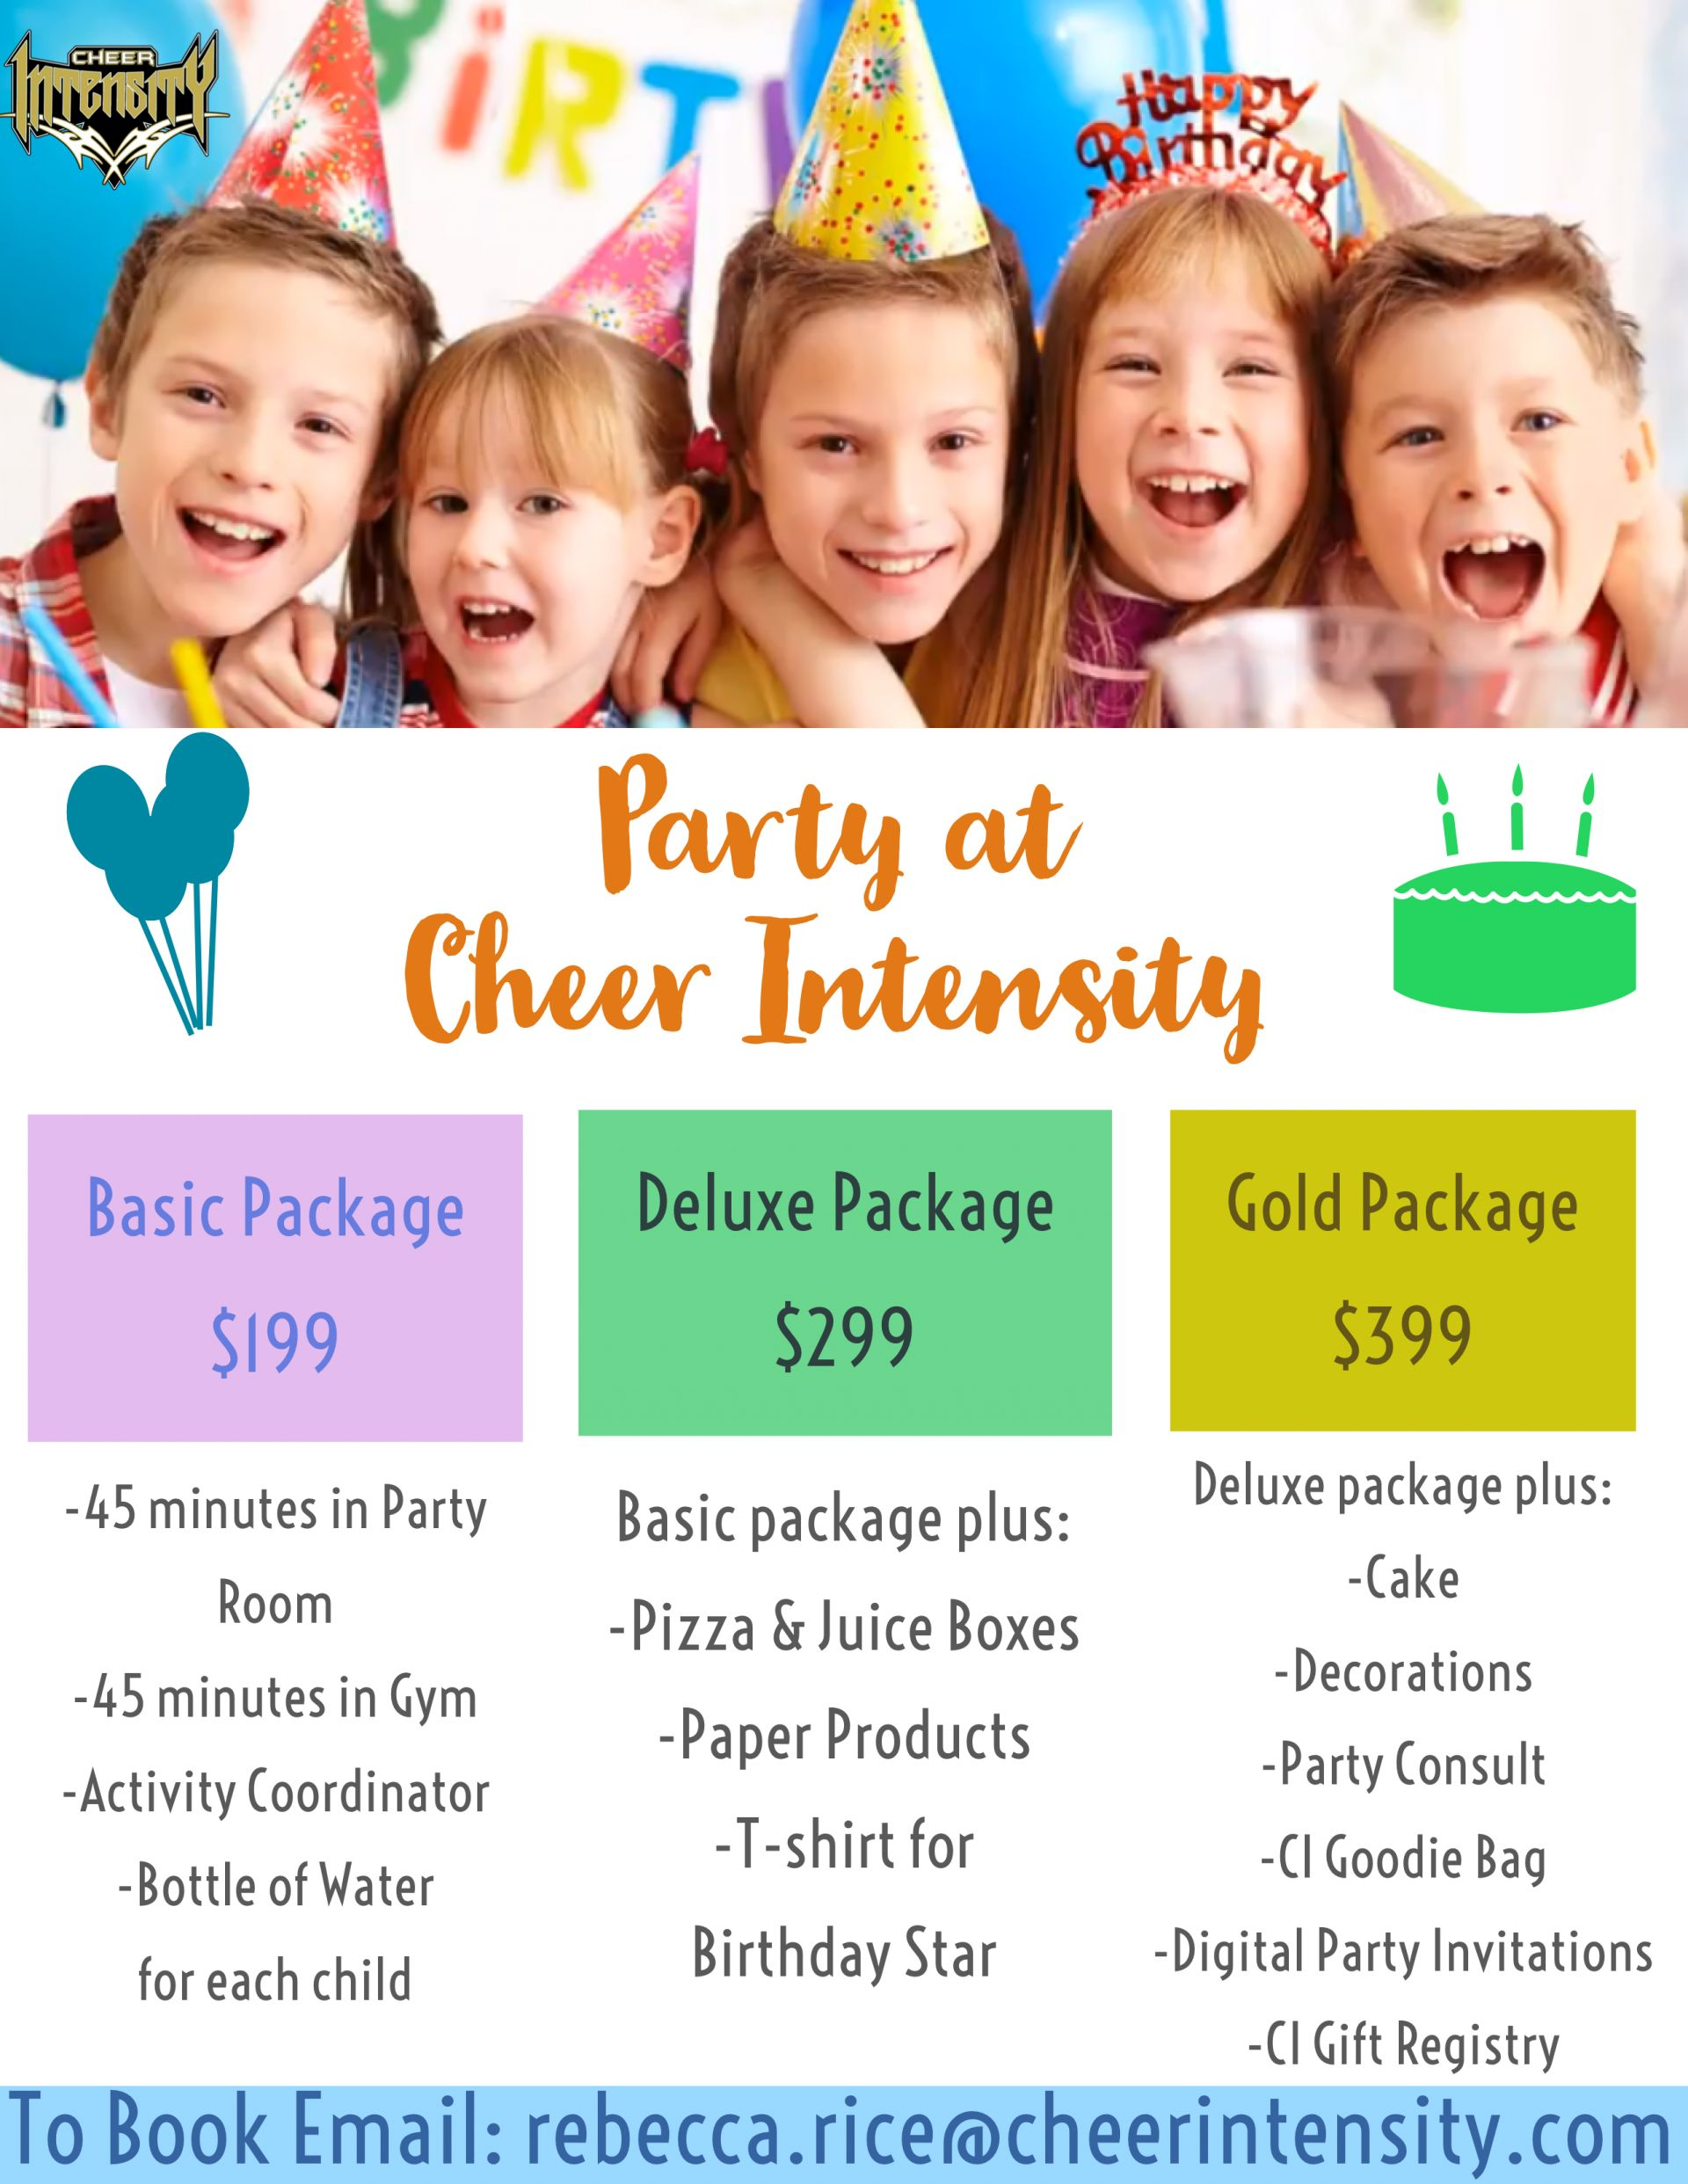 Beginning In January You Can Now Have Your BIRTHDAY PARTY At Cheer Intensity Our New Location Colonie NY Will Feature A State Of The Art Party Room